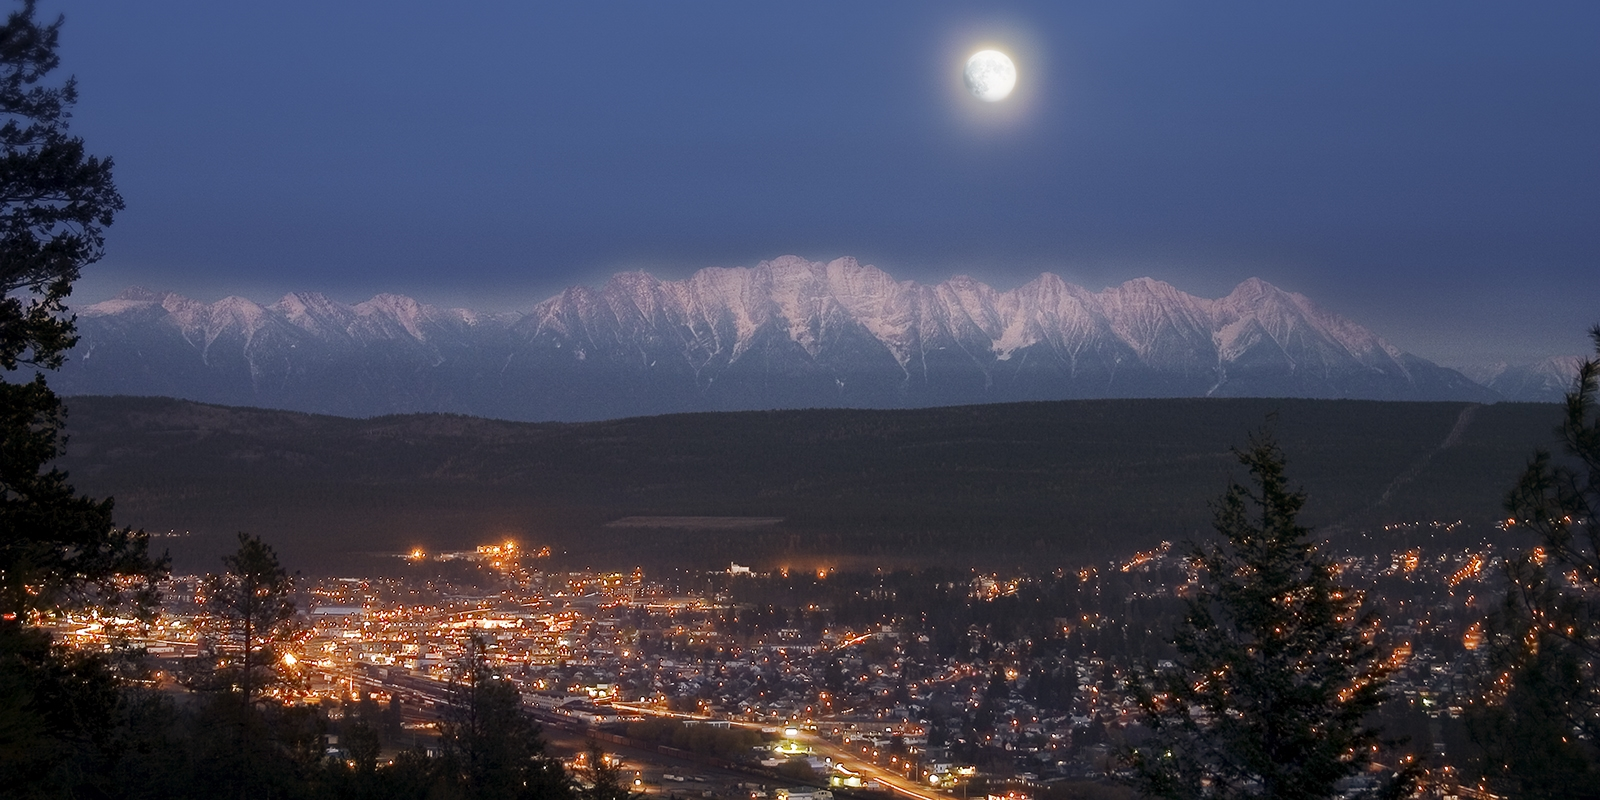 Cranbrook at Night with First Stages of Lunar Eclipse